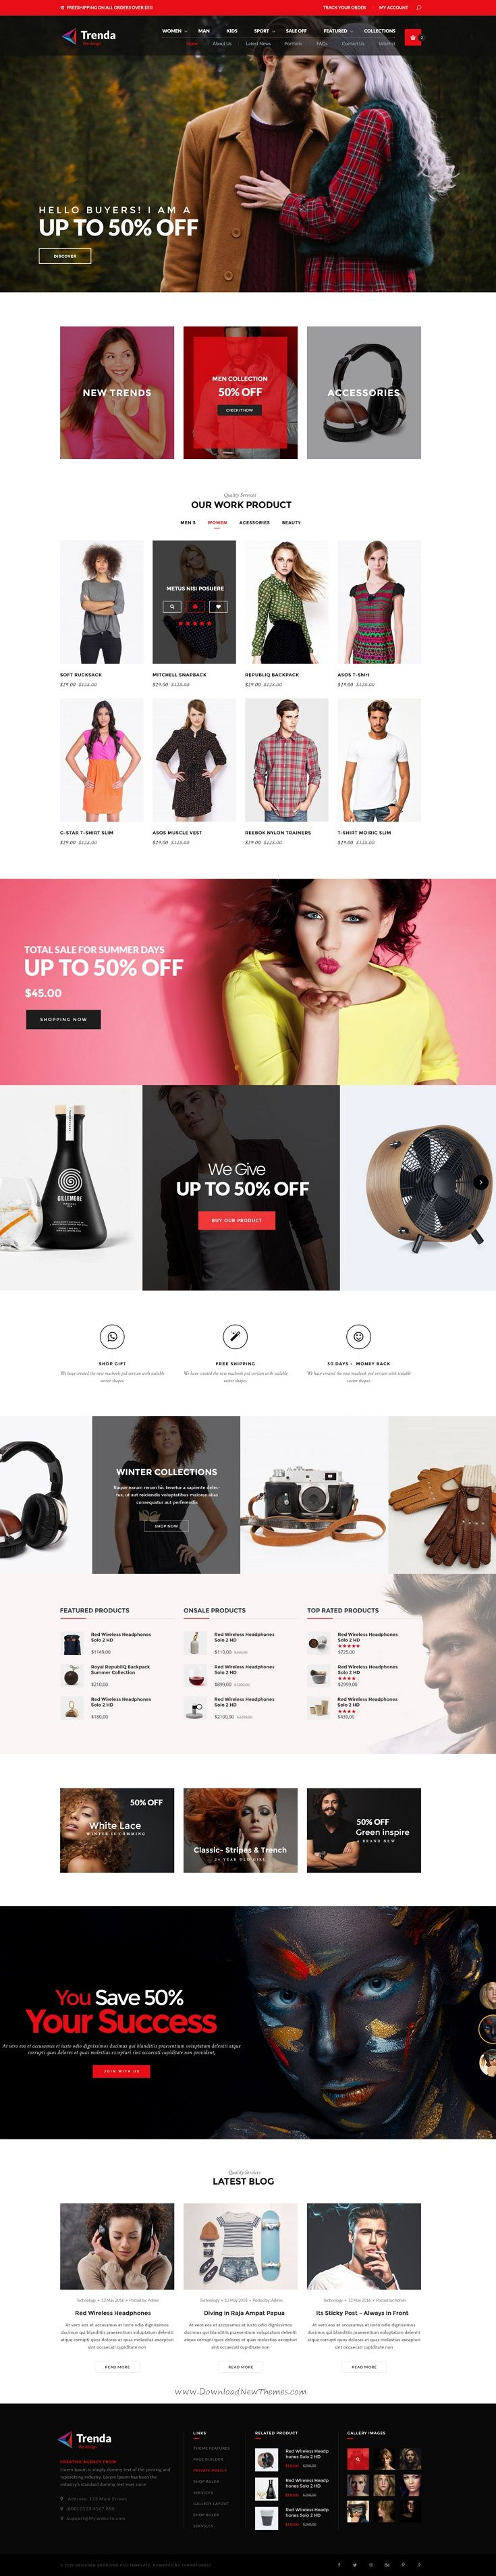 Trenda is premium PSD template is a uniquely eCommerce website template designed in Photoshop with a modern look.